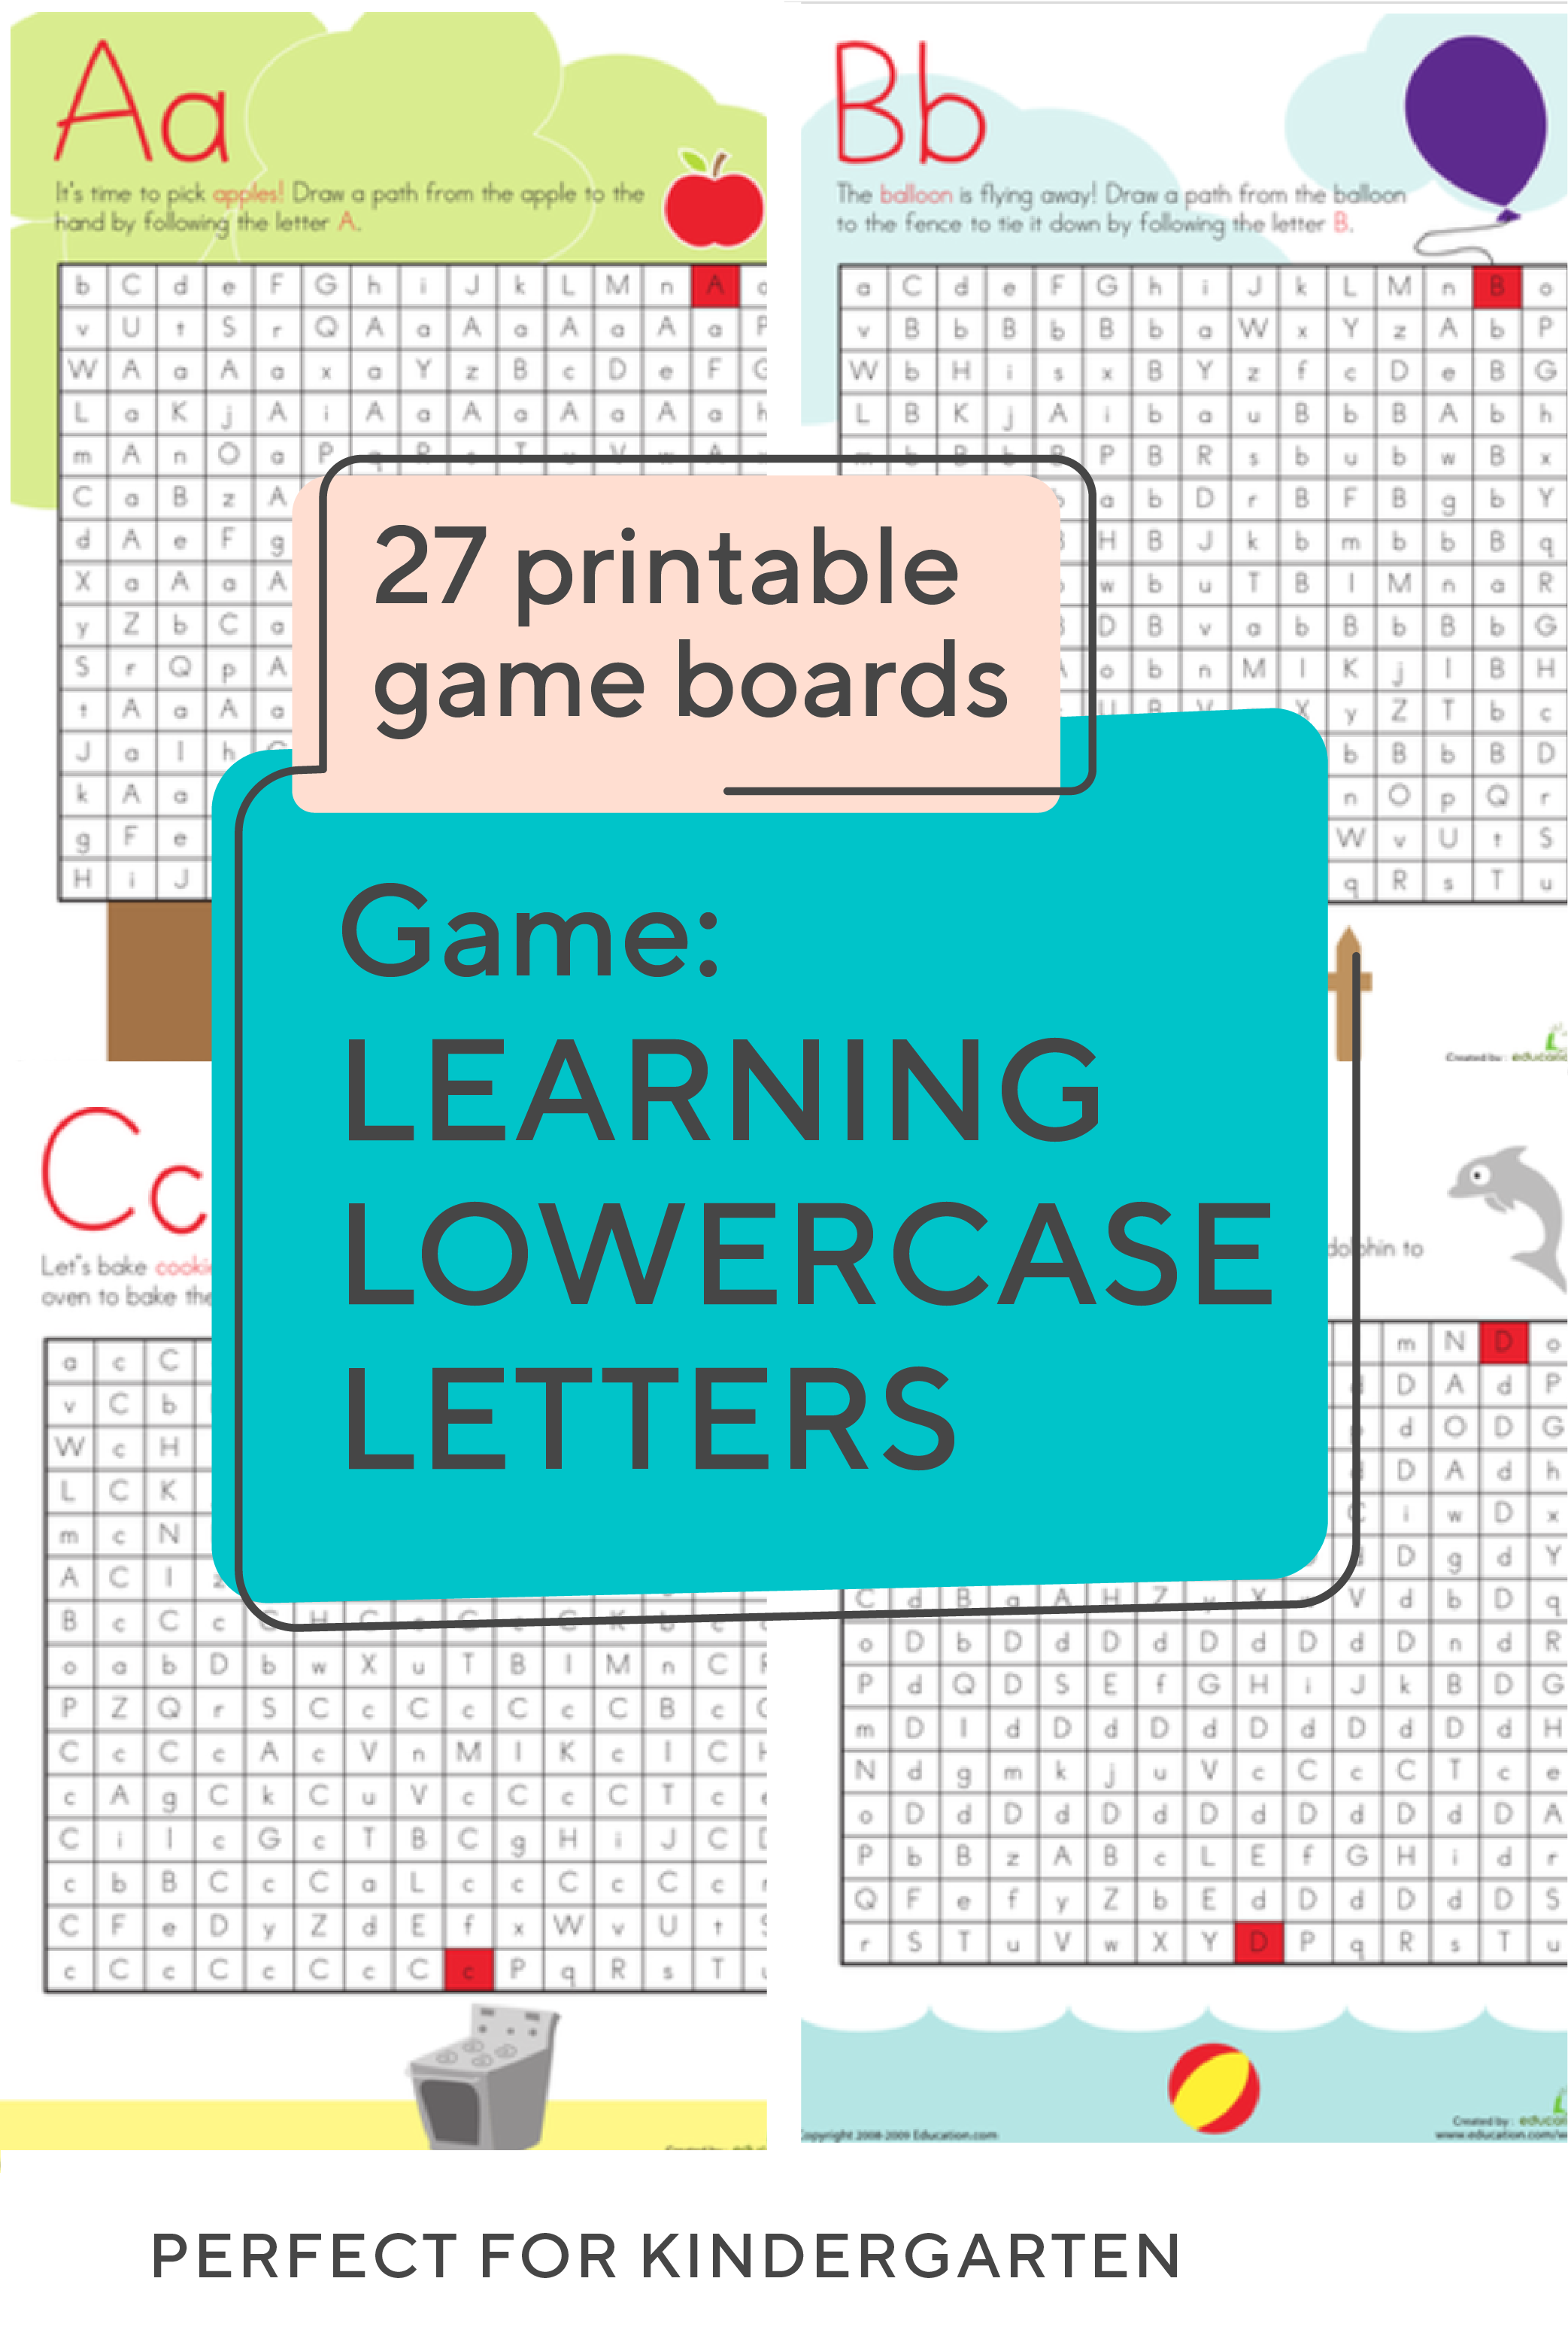 Try These Free Printable Letter Mazes To Help Your Little Learners Recognize And Name Capital